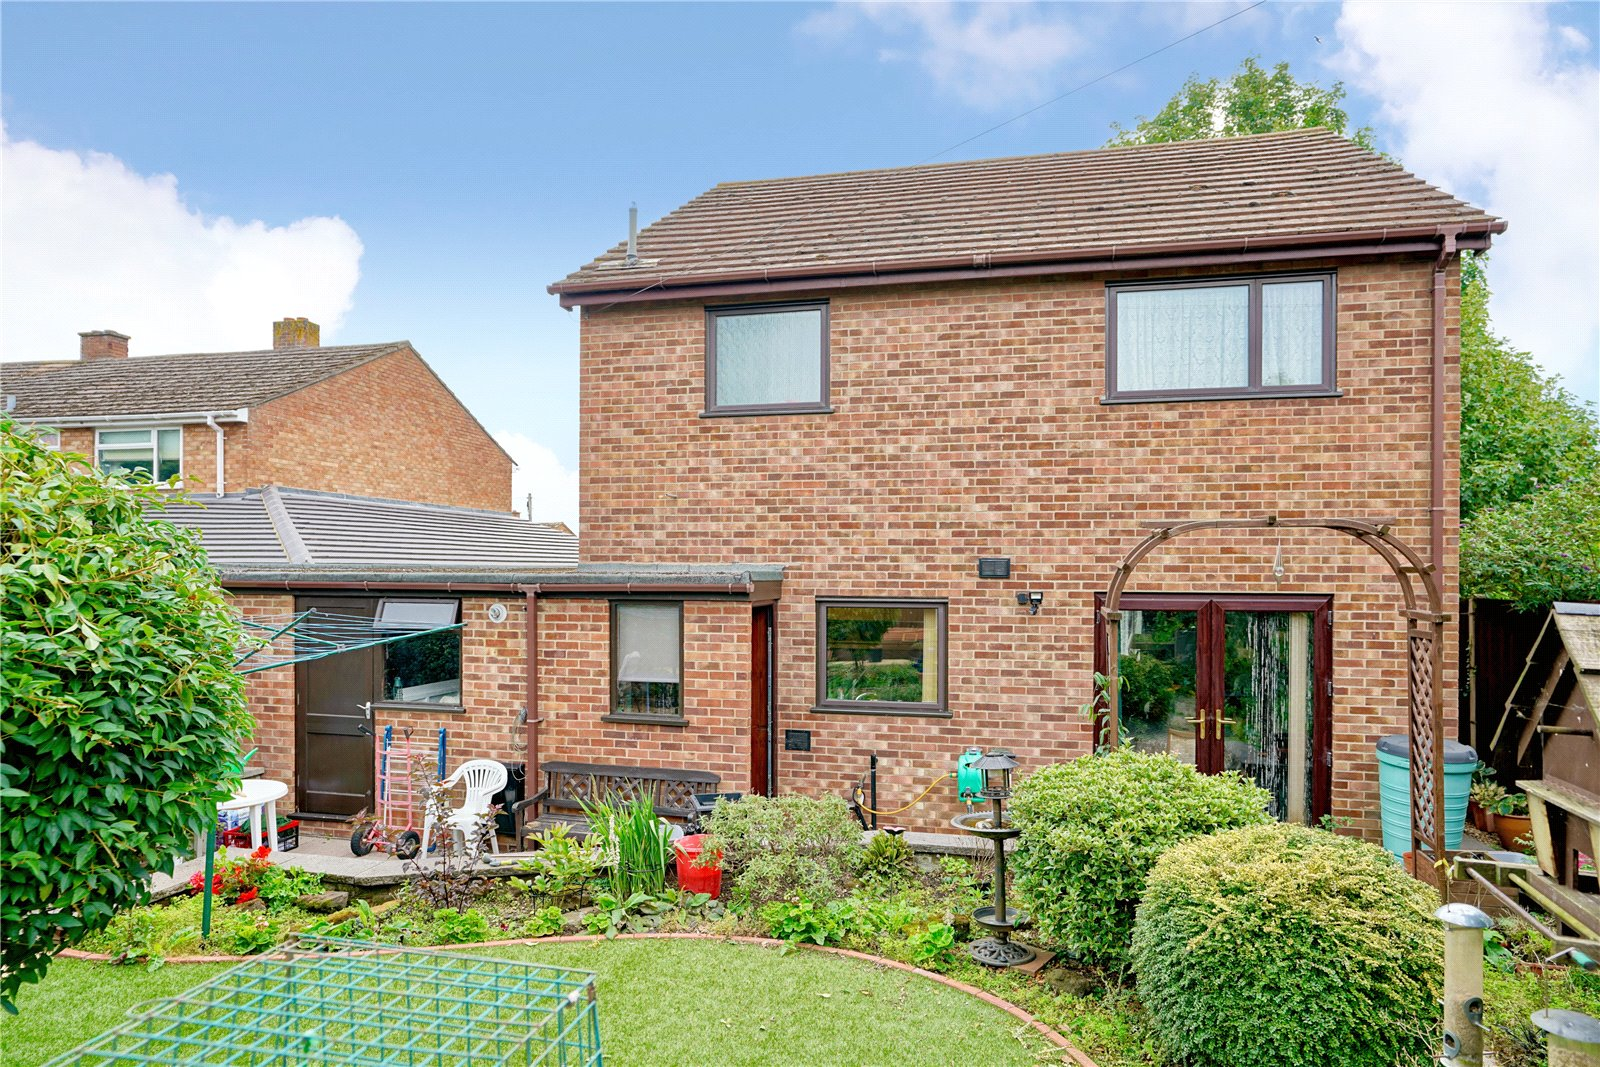 3 bed house for sale in Laxton Close, Eaton Ford - Property Image 1